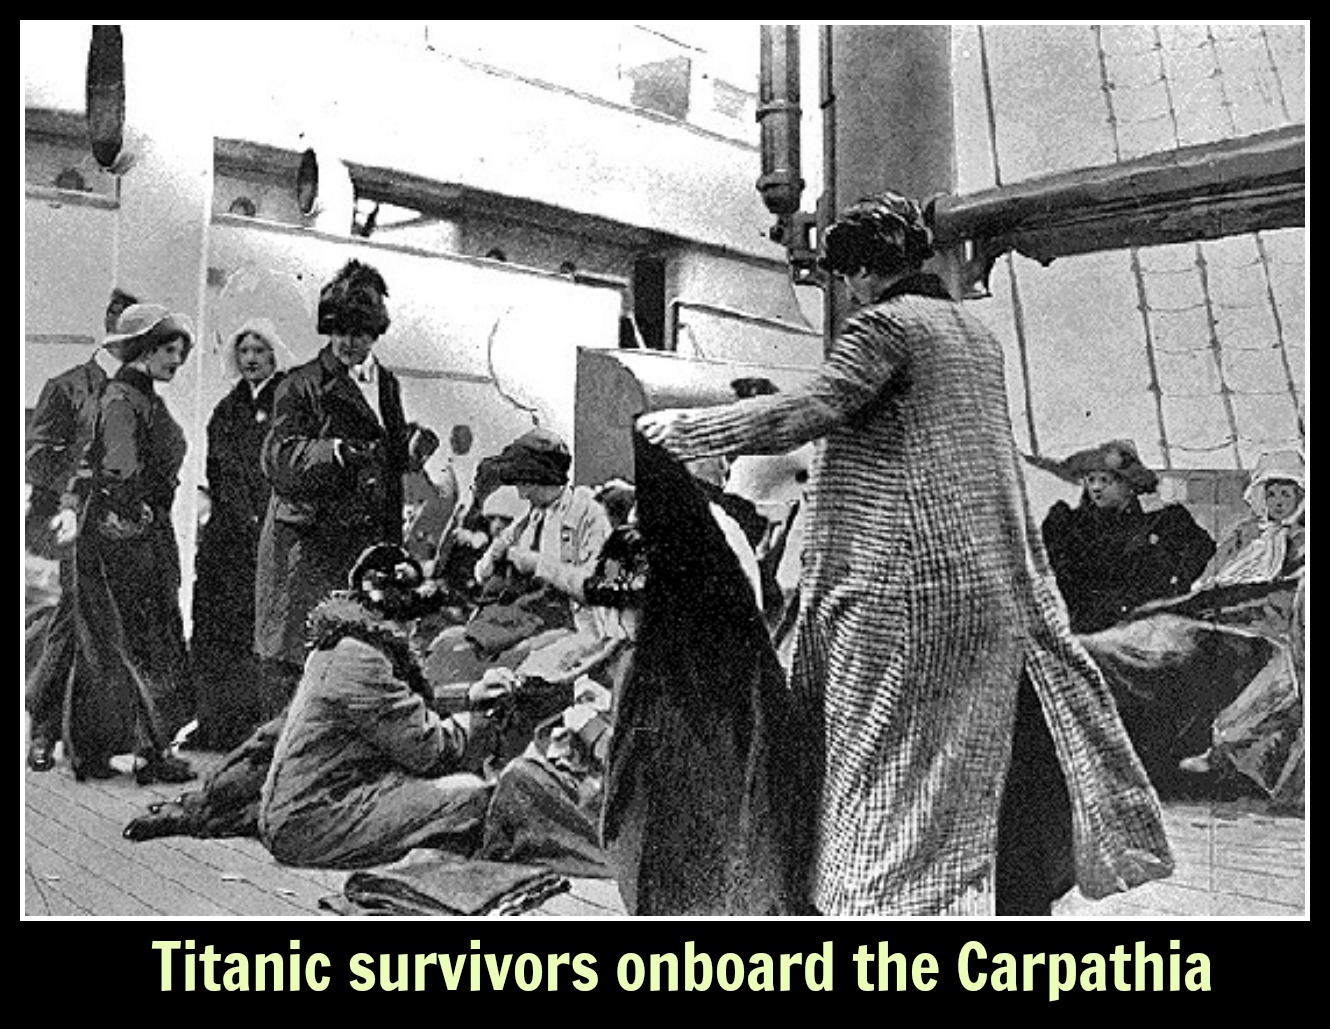 Titanic survivors onboard the Carpathia text